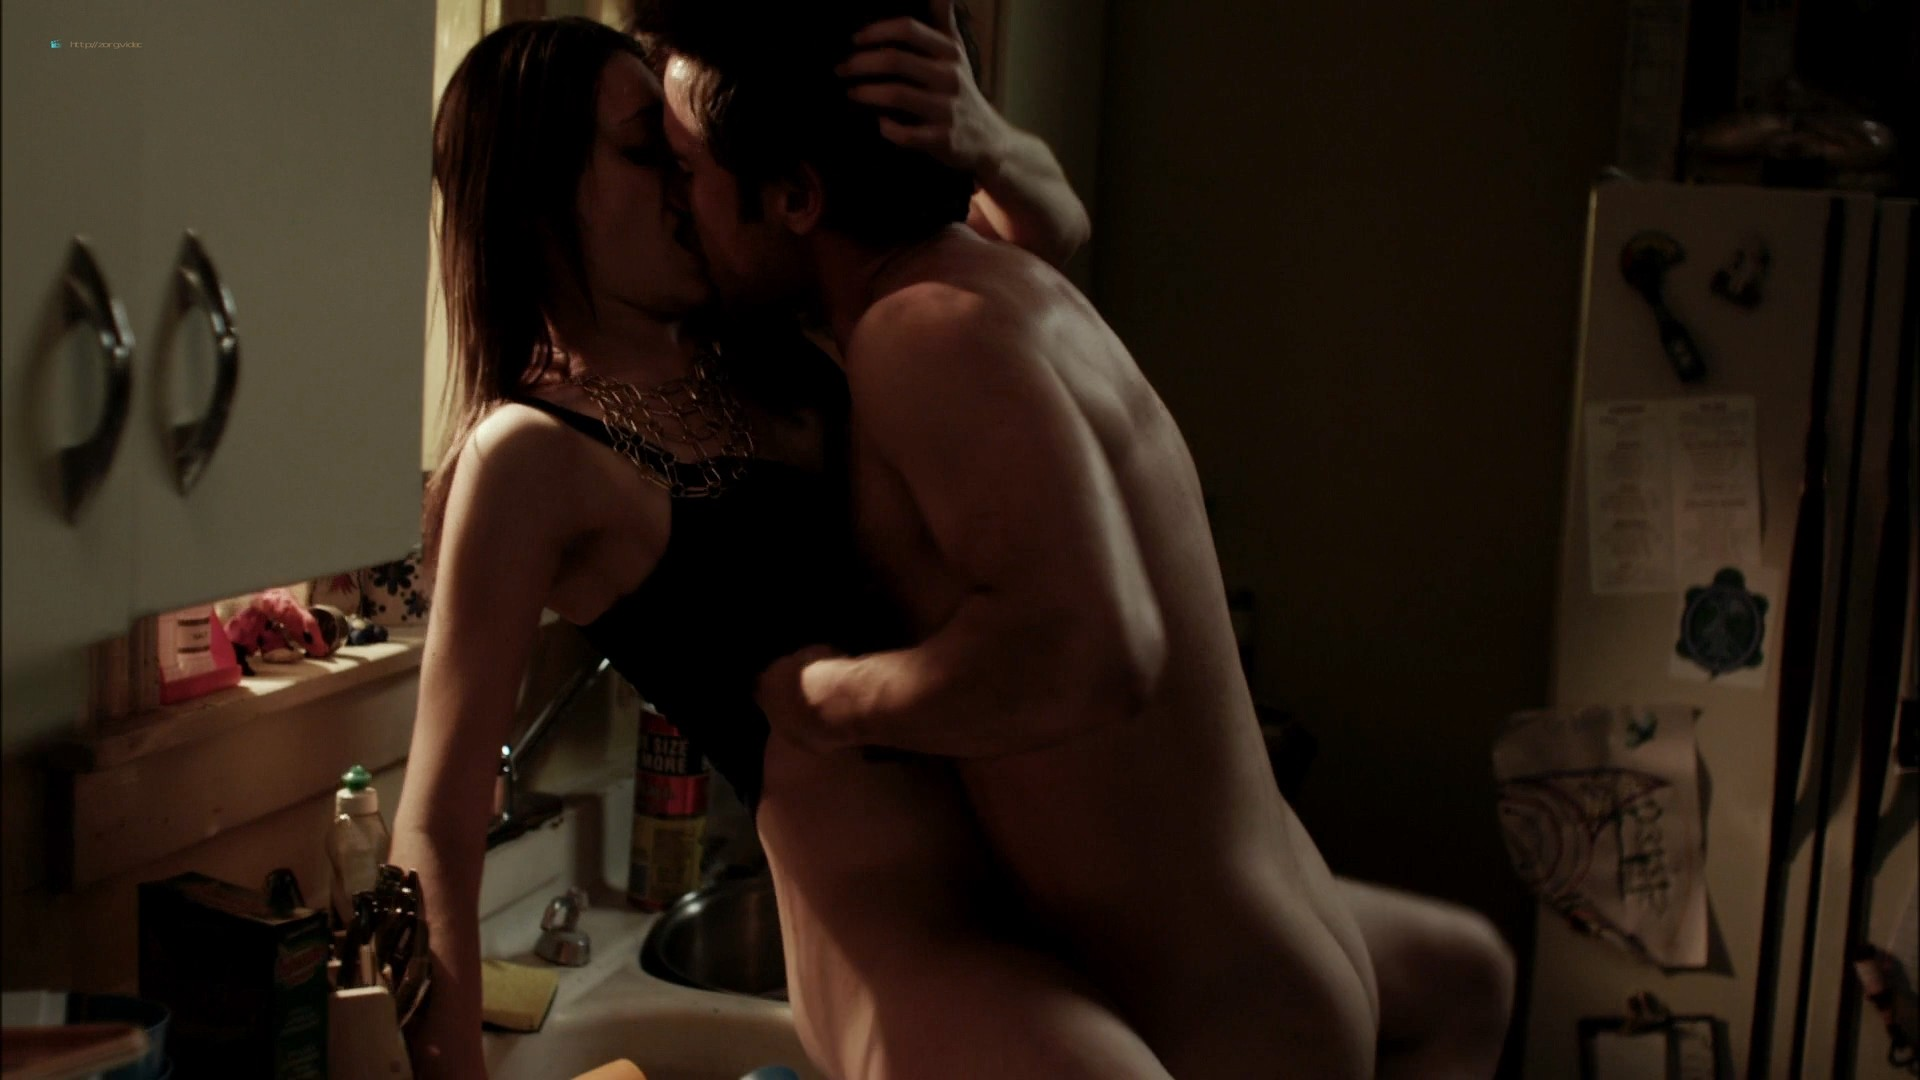 Emmy Rossum nude topless in Shameless (2011) - s1e1 HD 1080p BluRay (8)